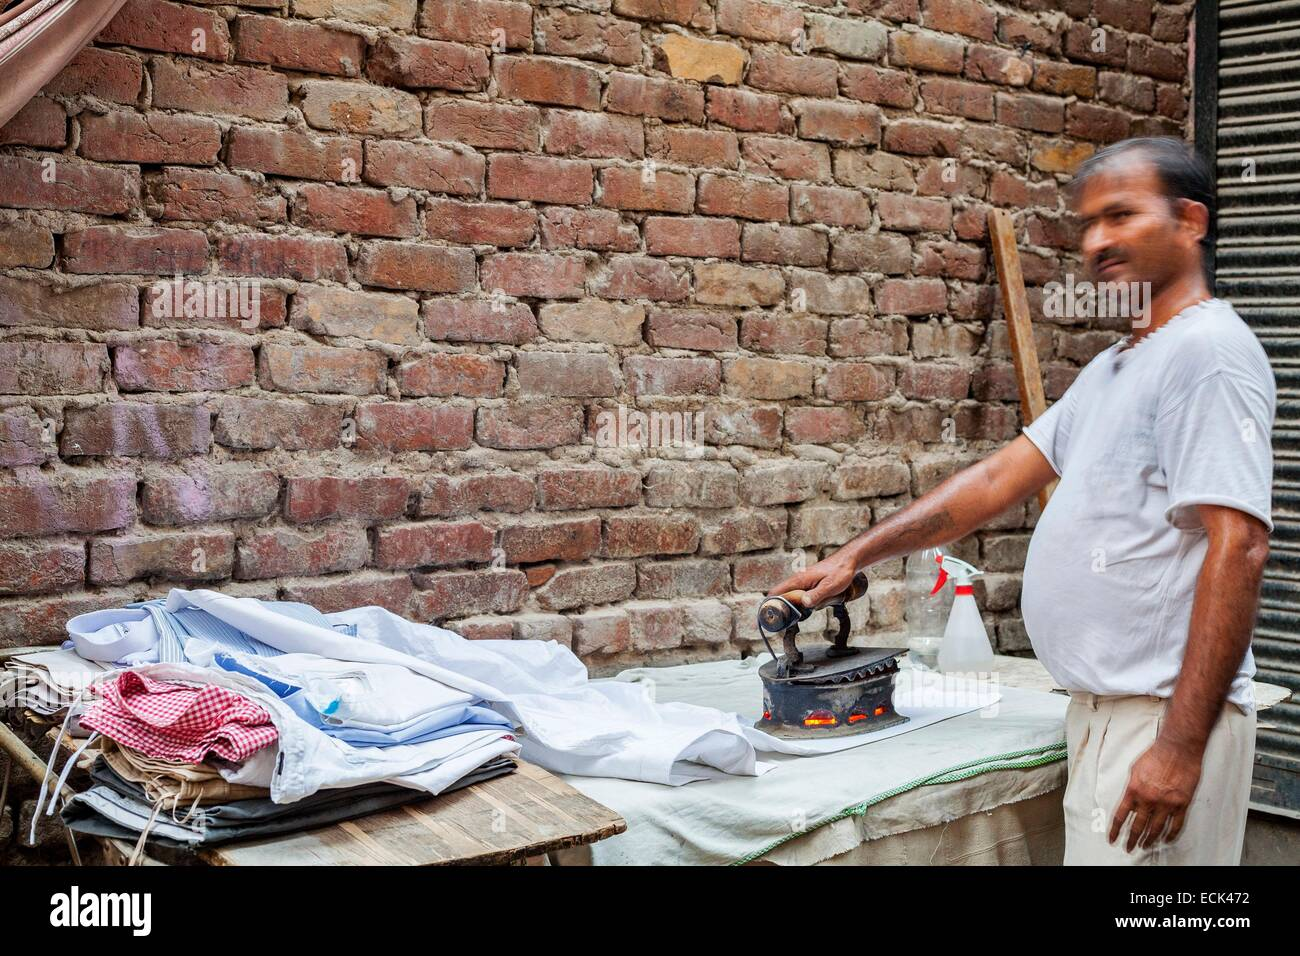 India, New Delhi, Khirkeel district, Bleacher still using an iron to embers - Stock Image